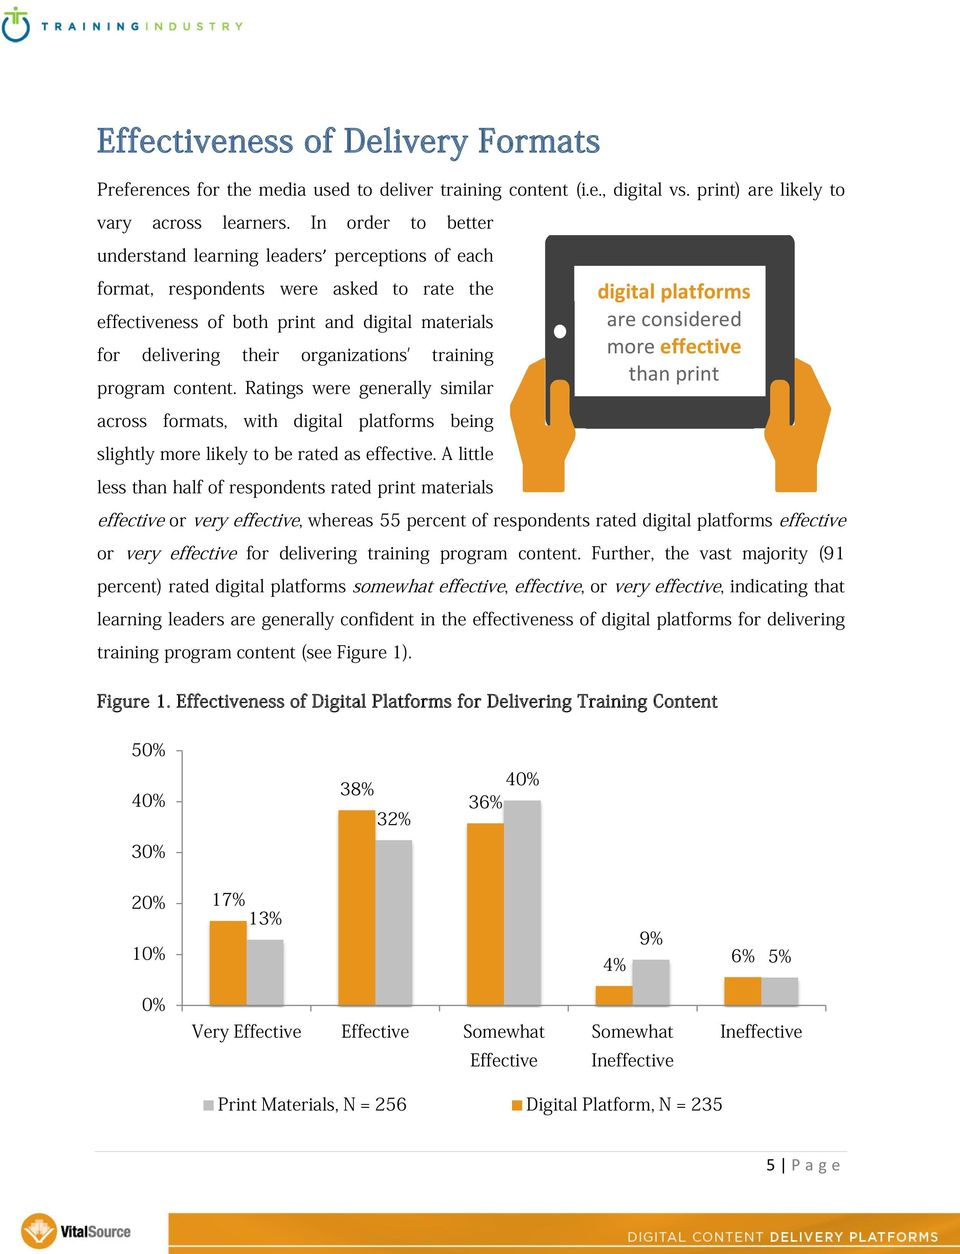 training program content. Ratings were generally similar across formats, with digital platforms being slightly more likely to be rated as effective.